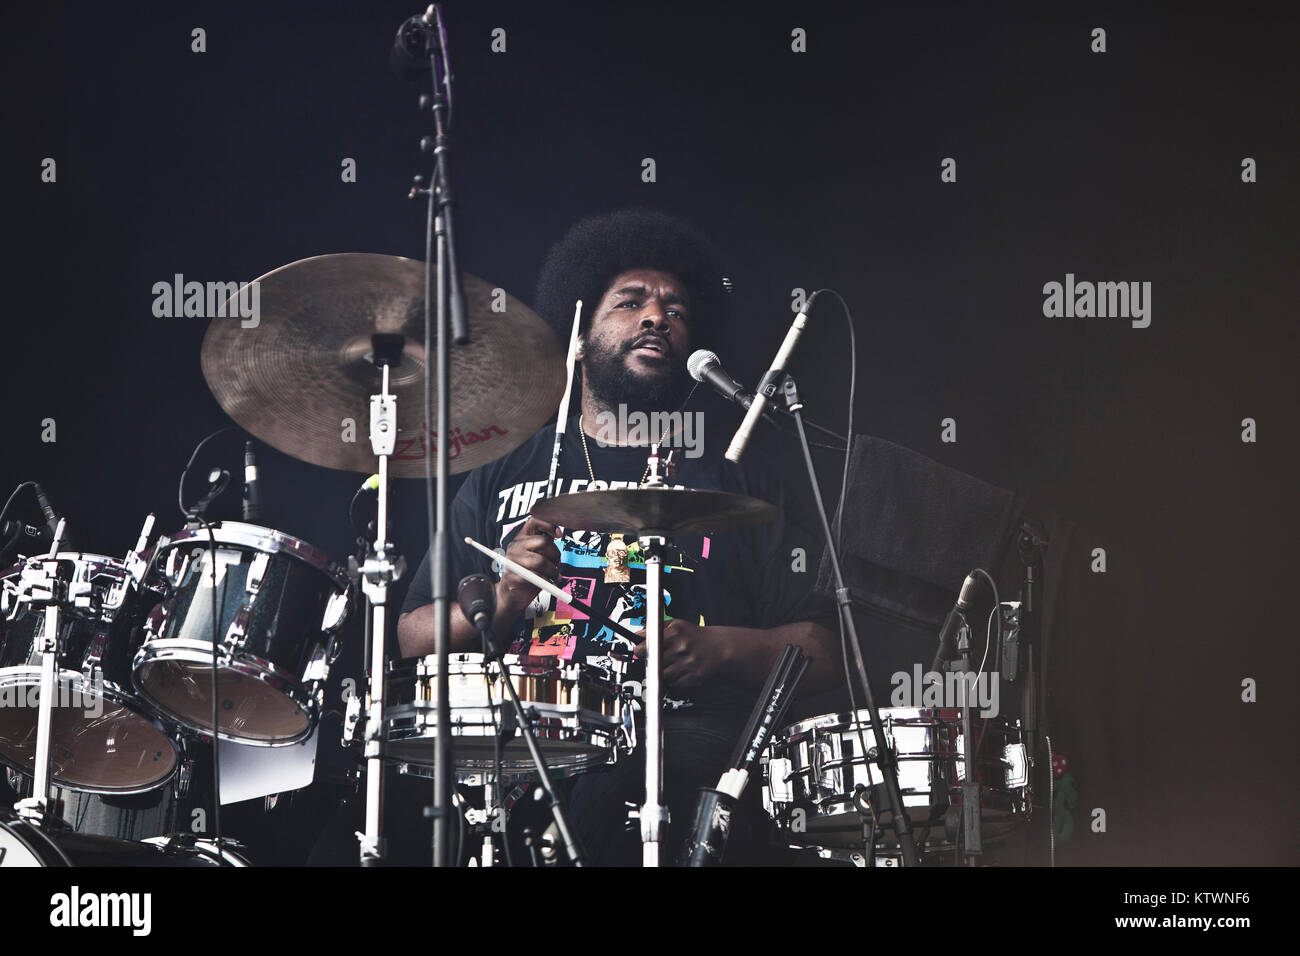 The American hip hop, rap and soul band The Roots performs a live concert at Roskilde Festival 2012. Here drummer Stock Photo